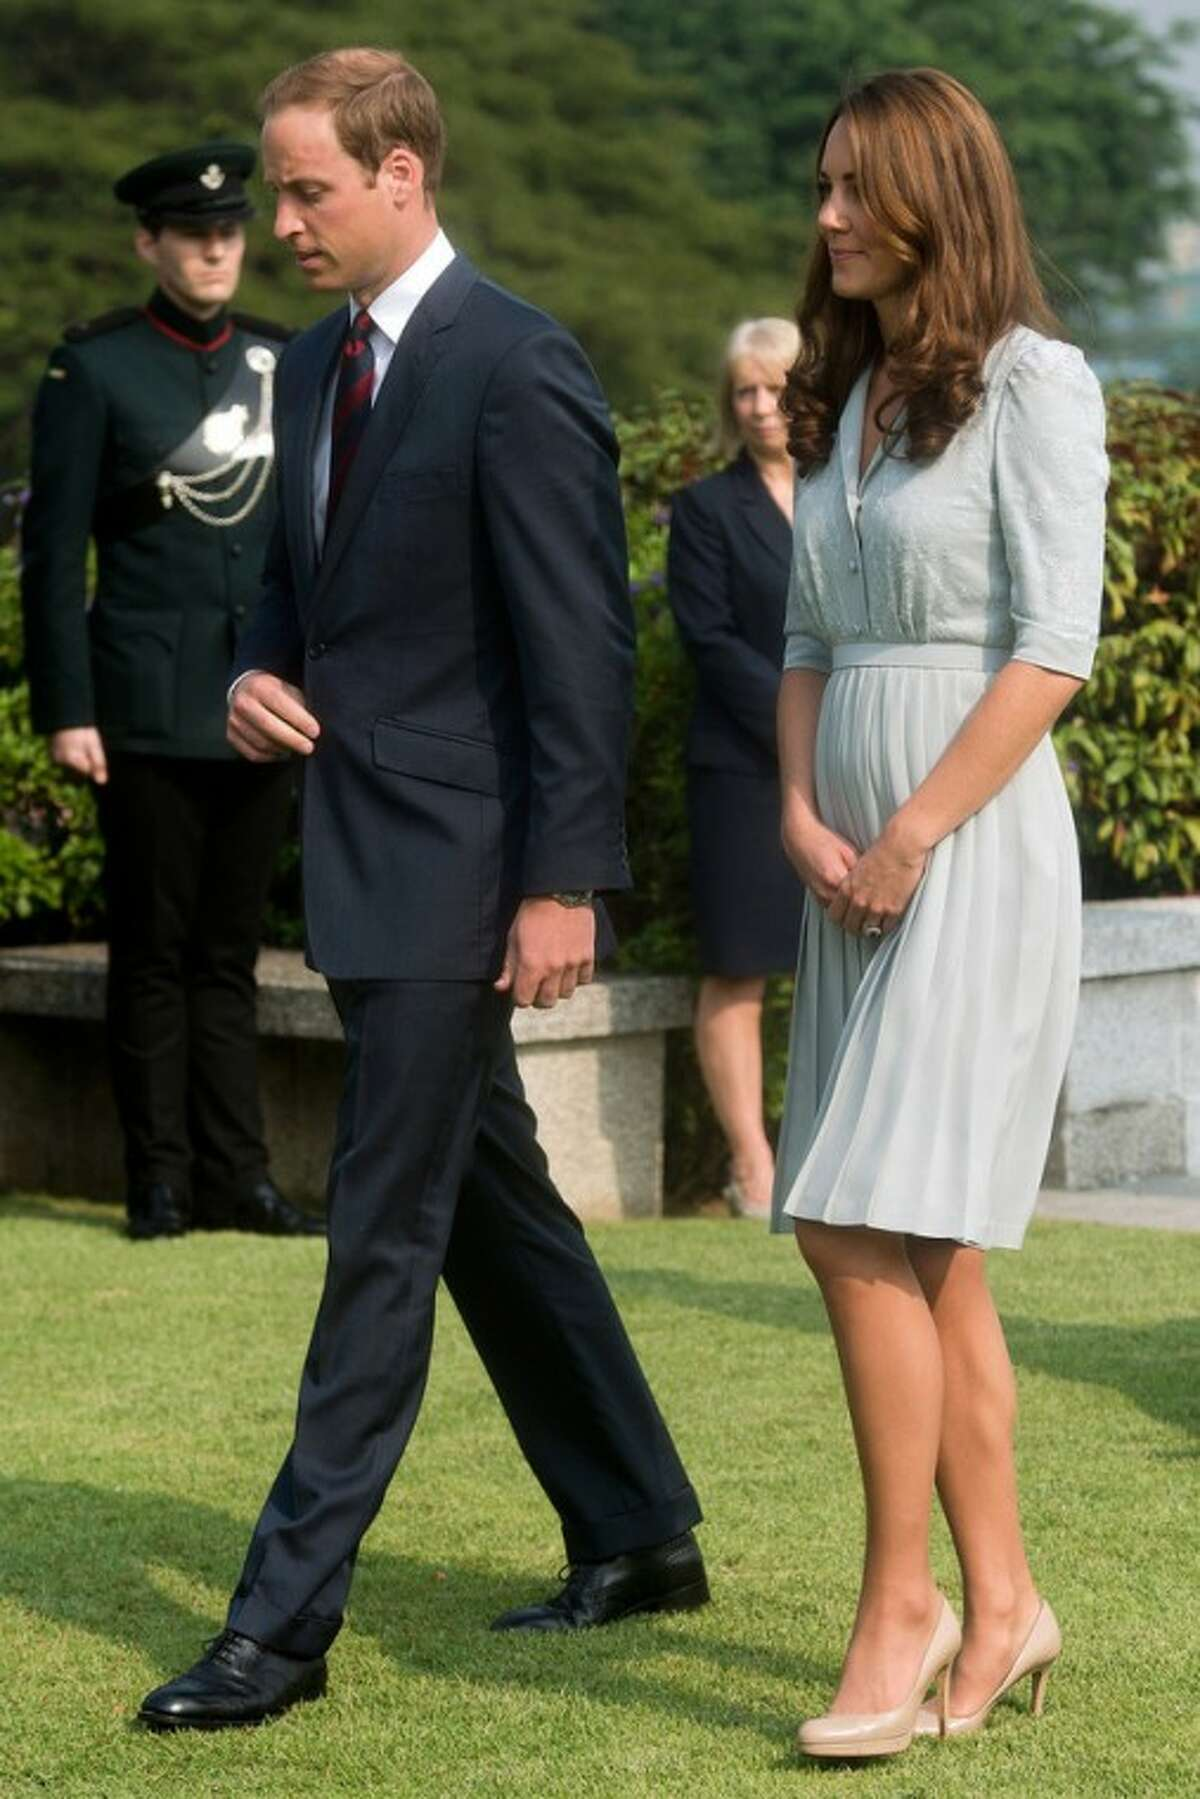 FILE - In this Thursday, Sept. 13, 2012 file photo, Britain's Prince William and his wife Kate, the Duke and Duchess of Cambridge, walk together as they visit the Kranji Commonwealth War Memorial in Singapore. Prince William and his wife Catherine are expecting their first child. St. James?'s Palace announced the pregnancy Monday, saying that the Duchess of Cambridge, formerly known as Kate Middleton has a severe form of morning sickness and is currently in a London hospital. William is at his wife?'s side. (AP Photo/Nicolas Asfouri, Pool, File)